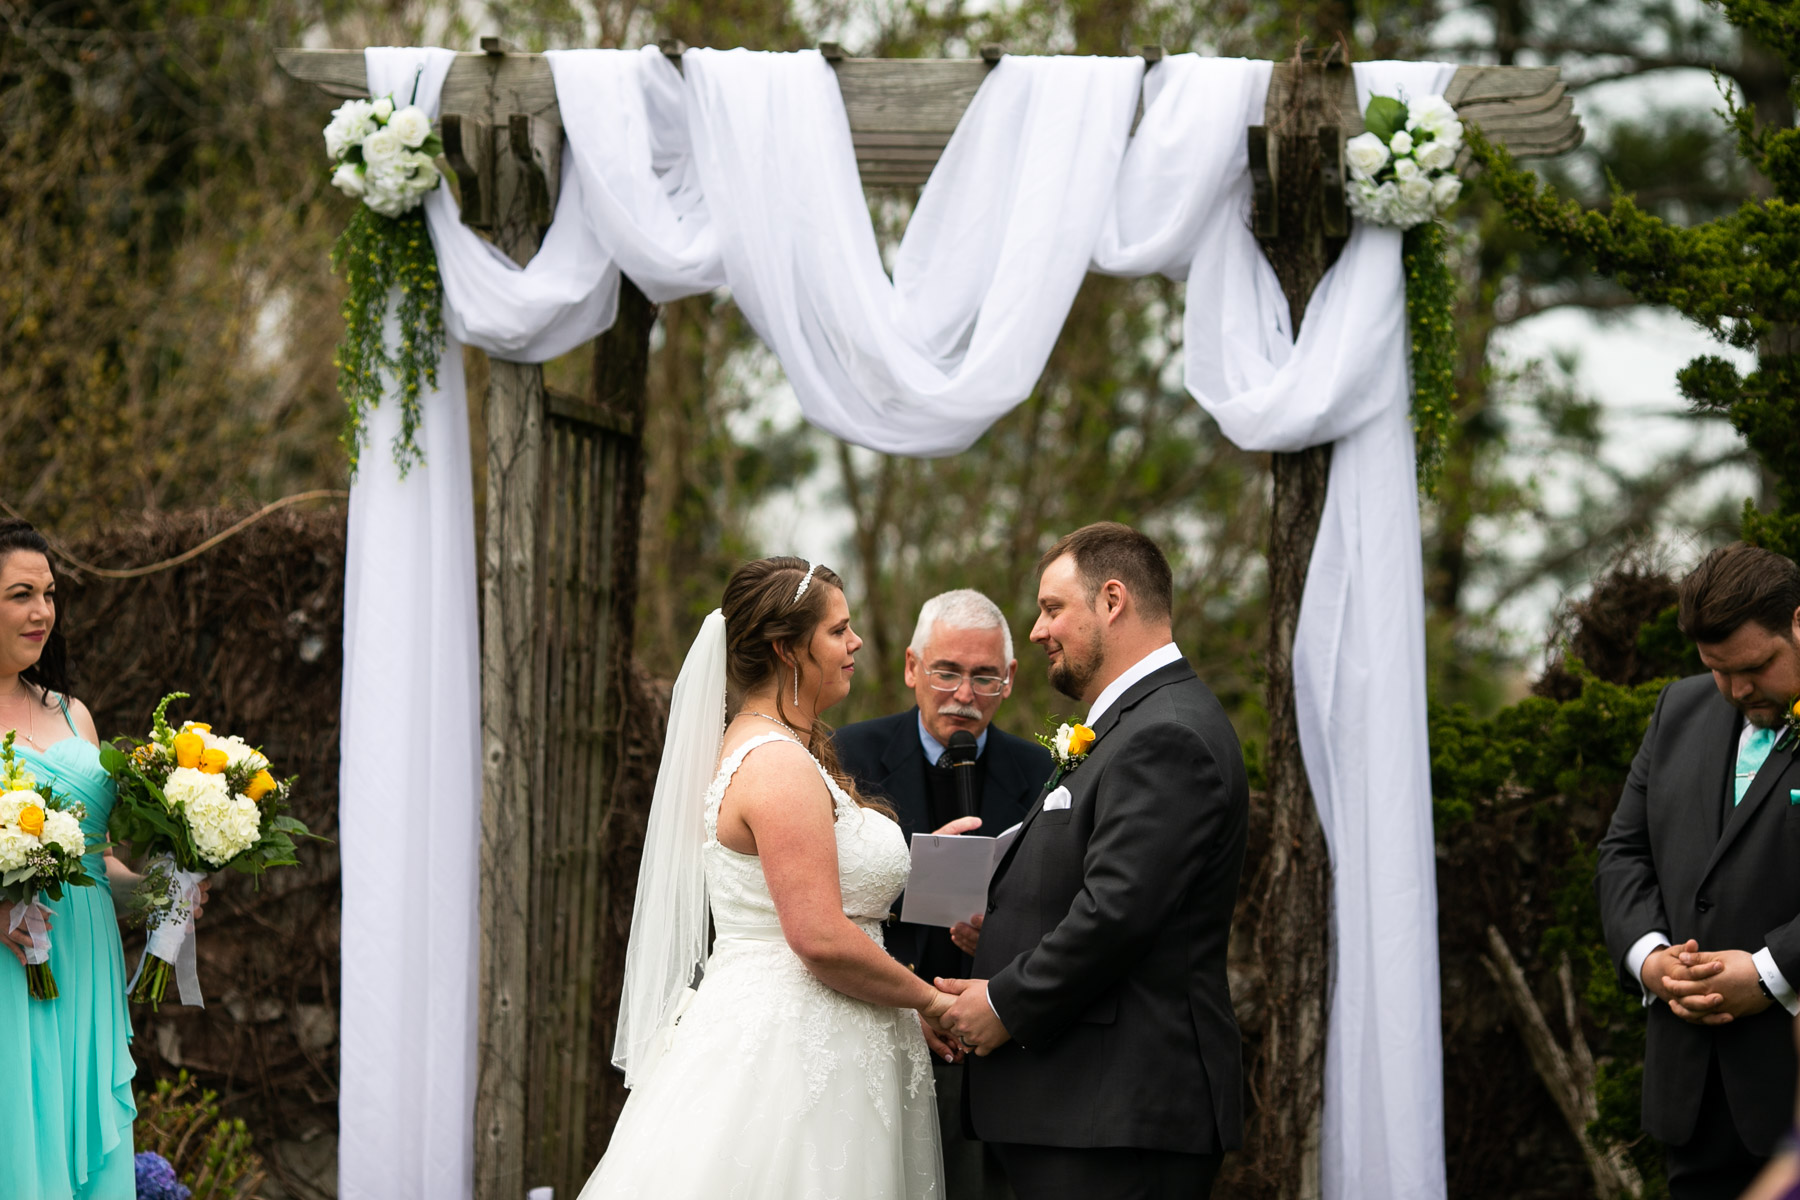 Fun and intimate moment of bride and groom